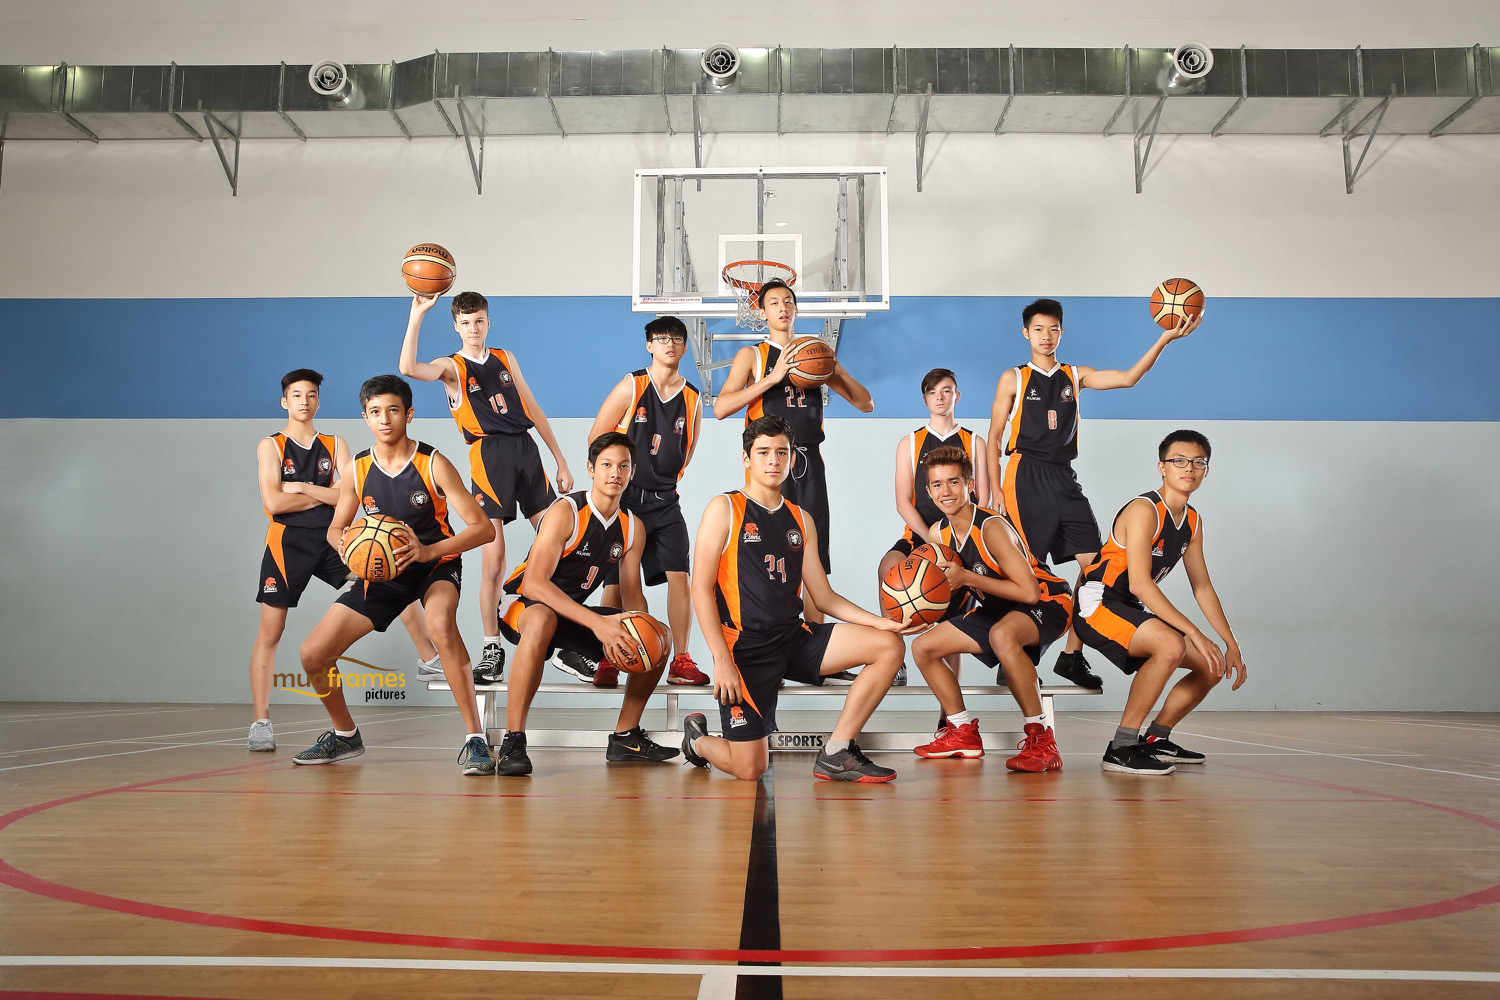 BSKL Basketball Group Shot